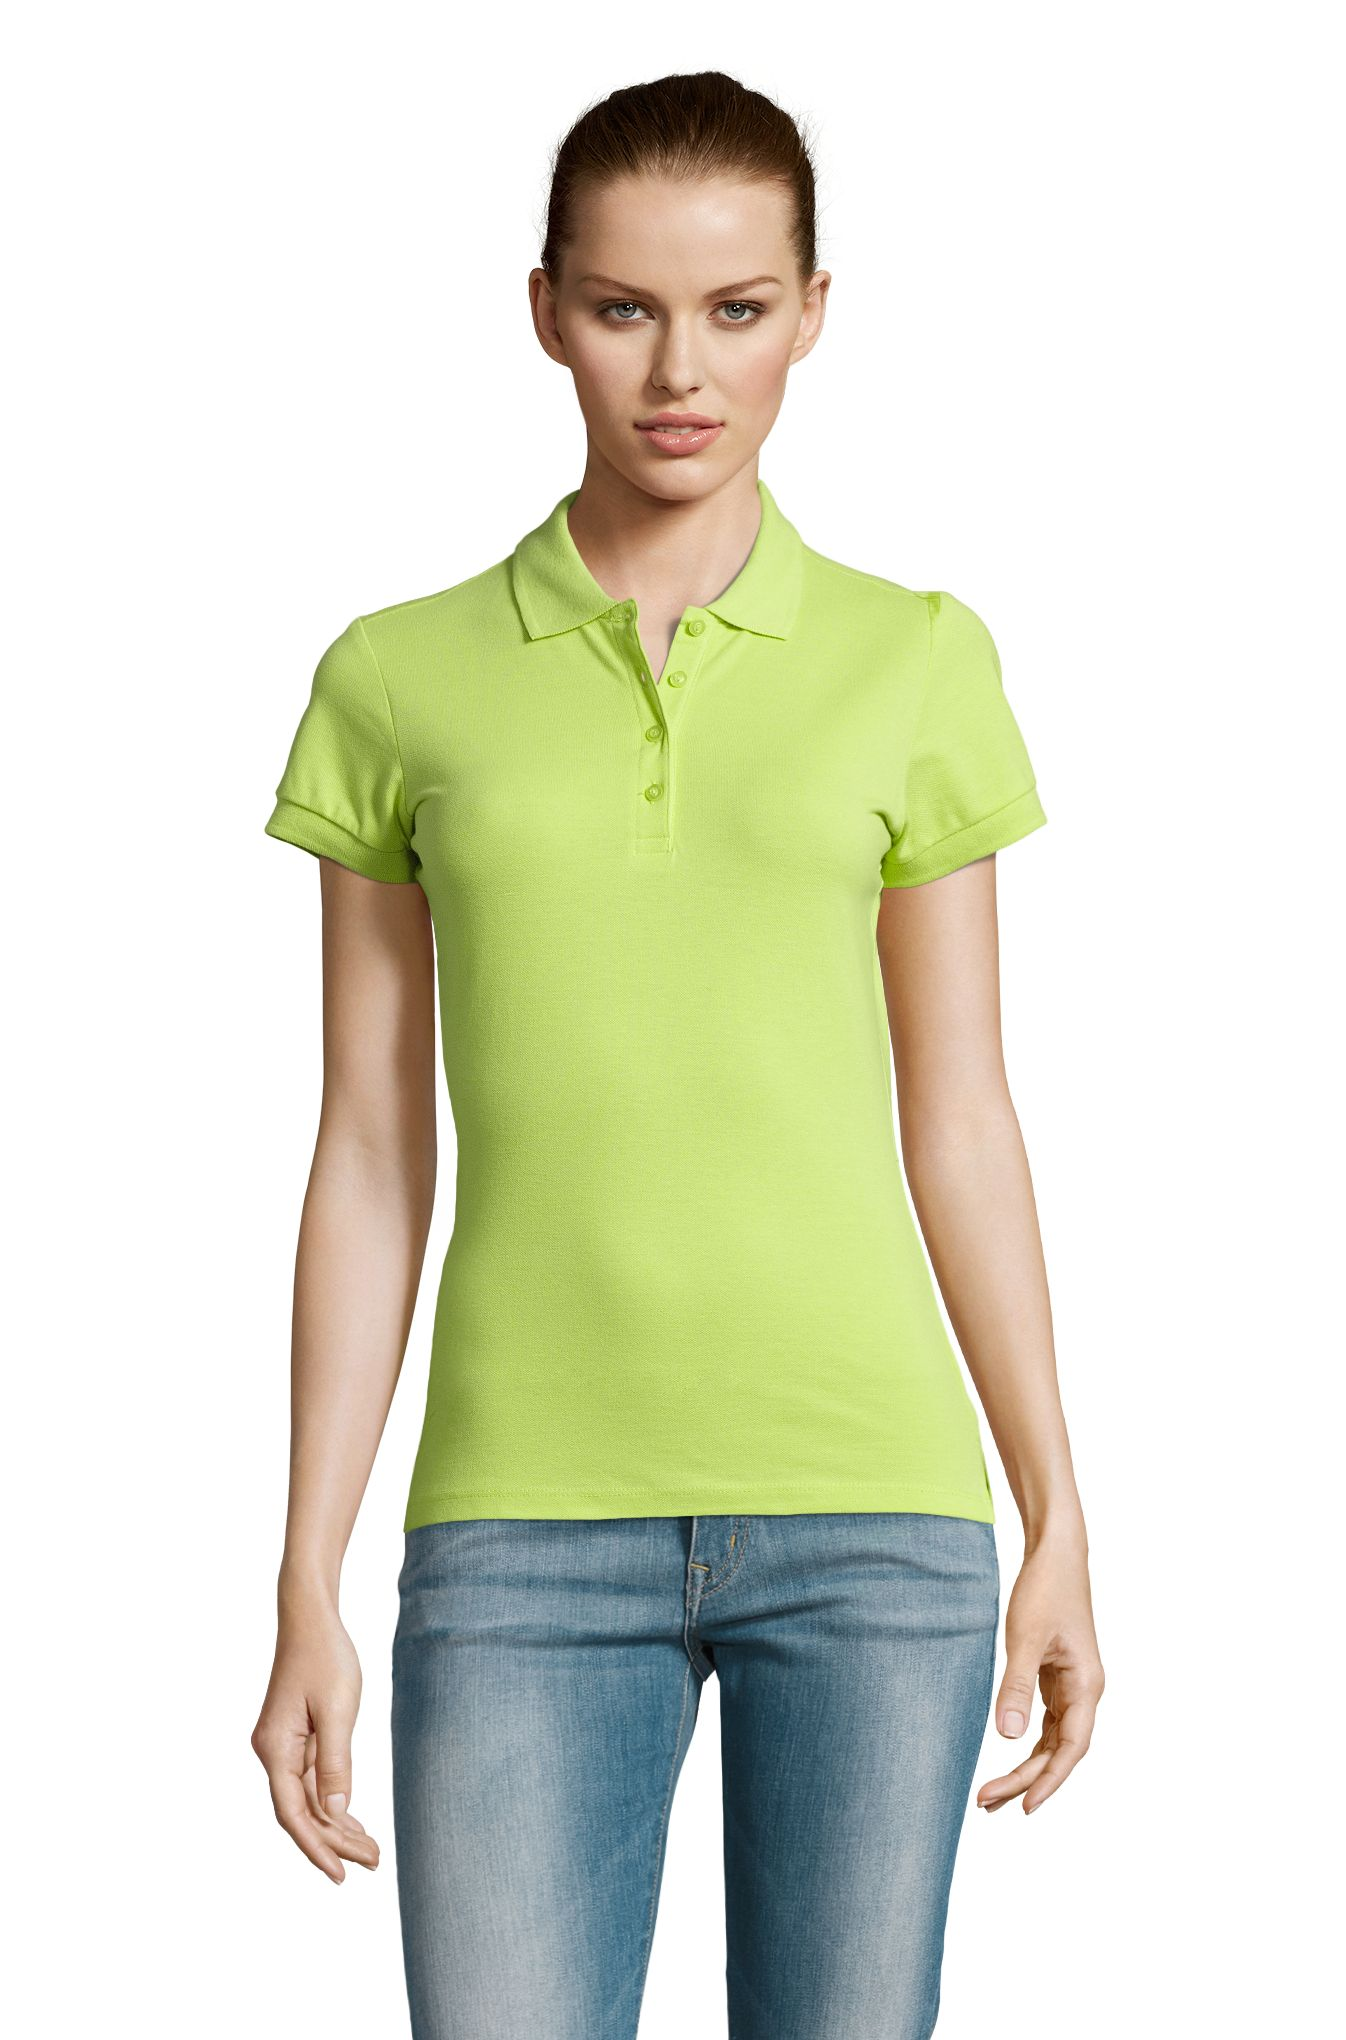 280 - Apple green